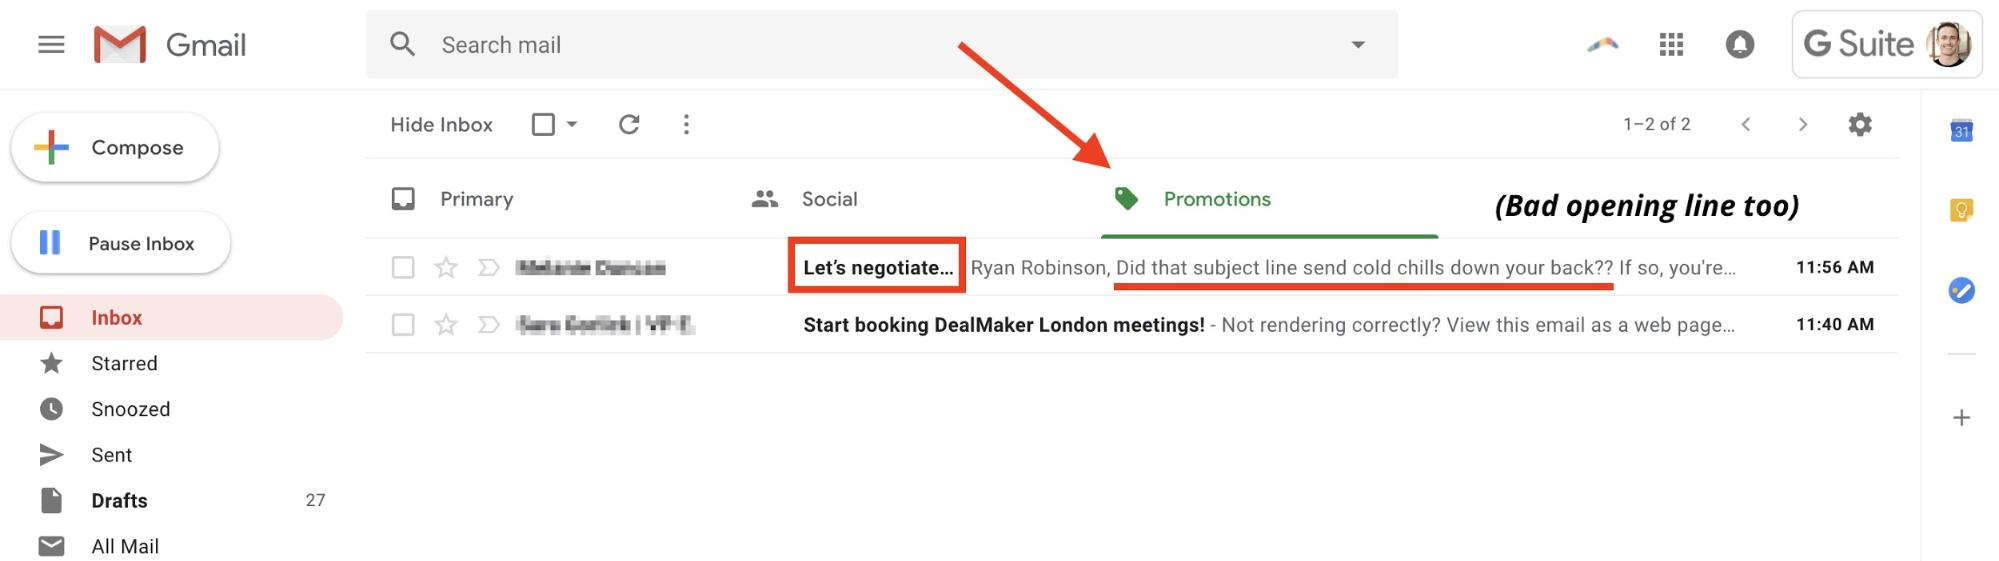 sales-emails-subject line example in Gmail promotions tab